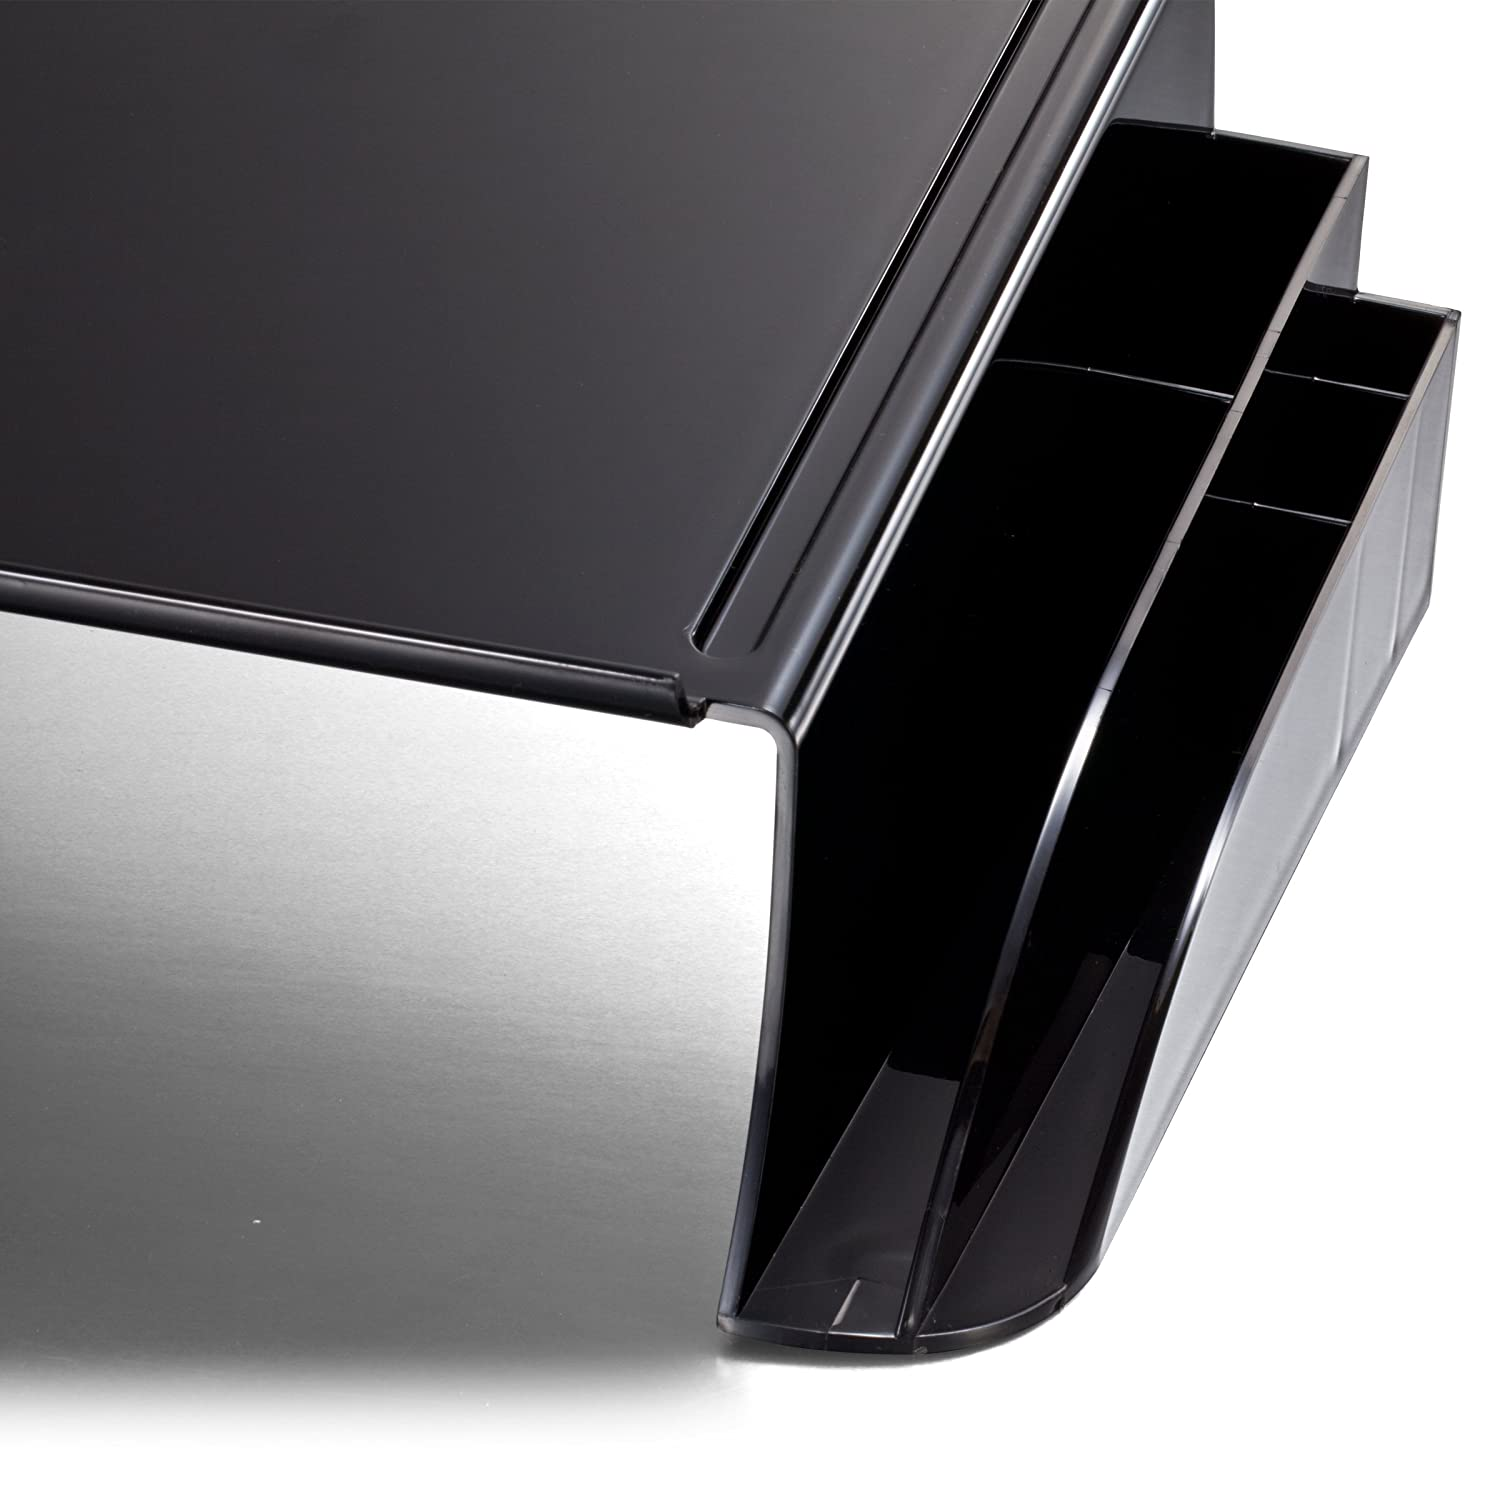 Officemate Telephone Stand Black 21522 12.5 x 10 .125 x 5.25 Inches